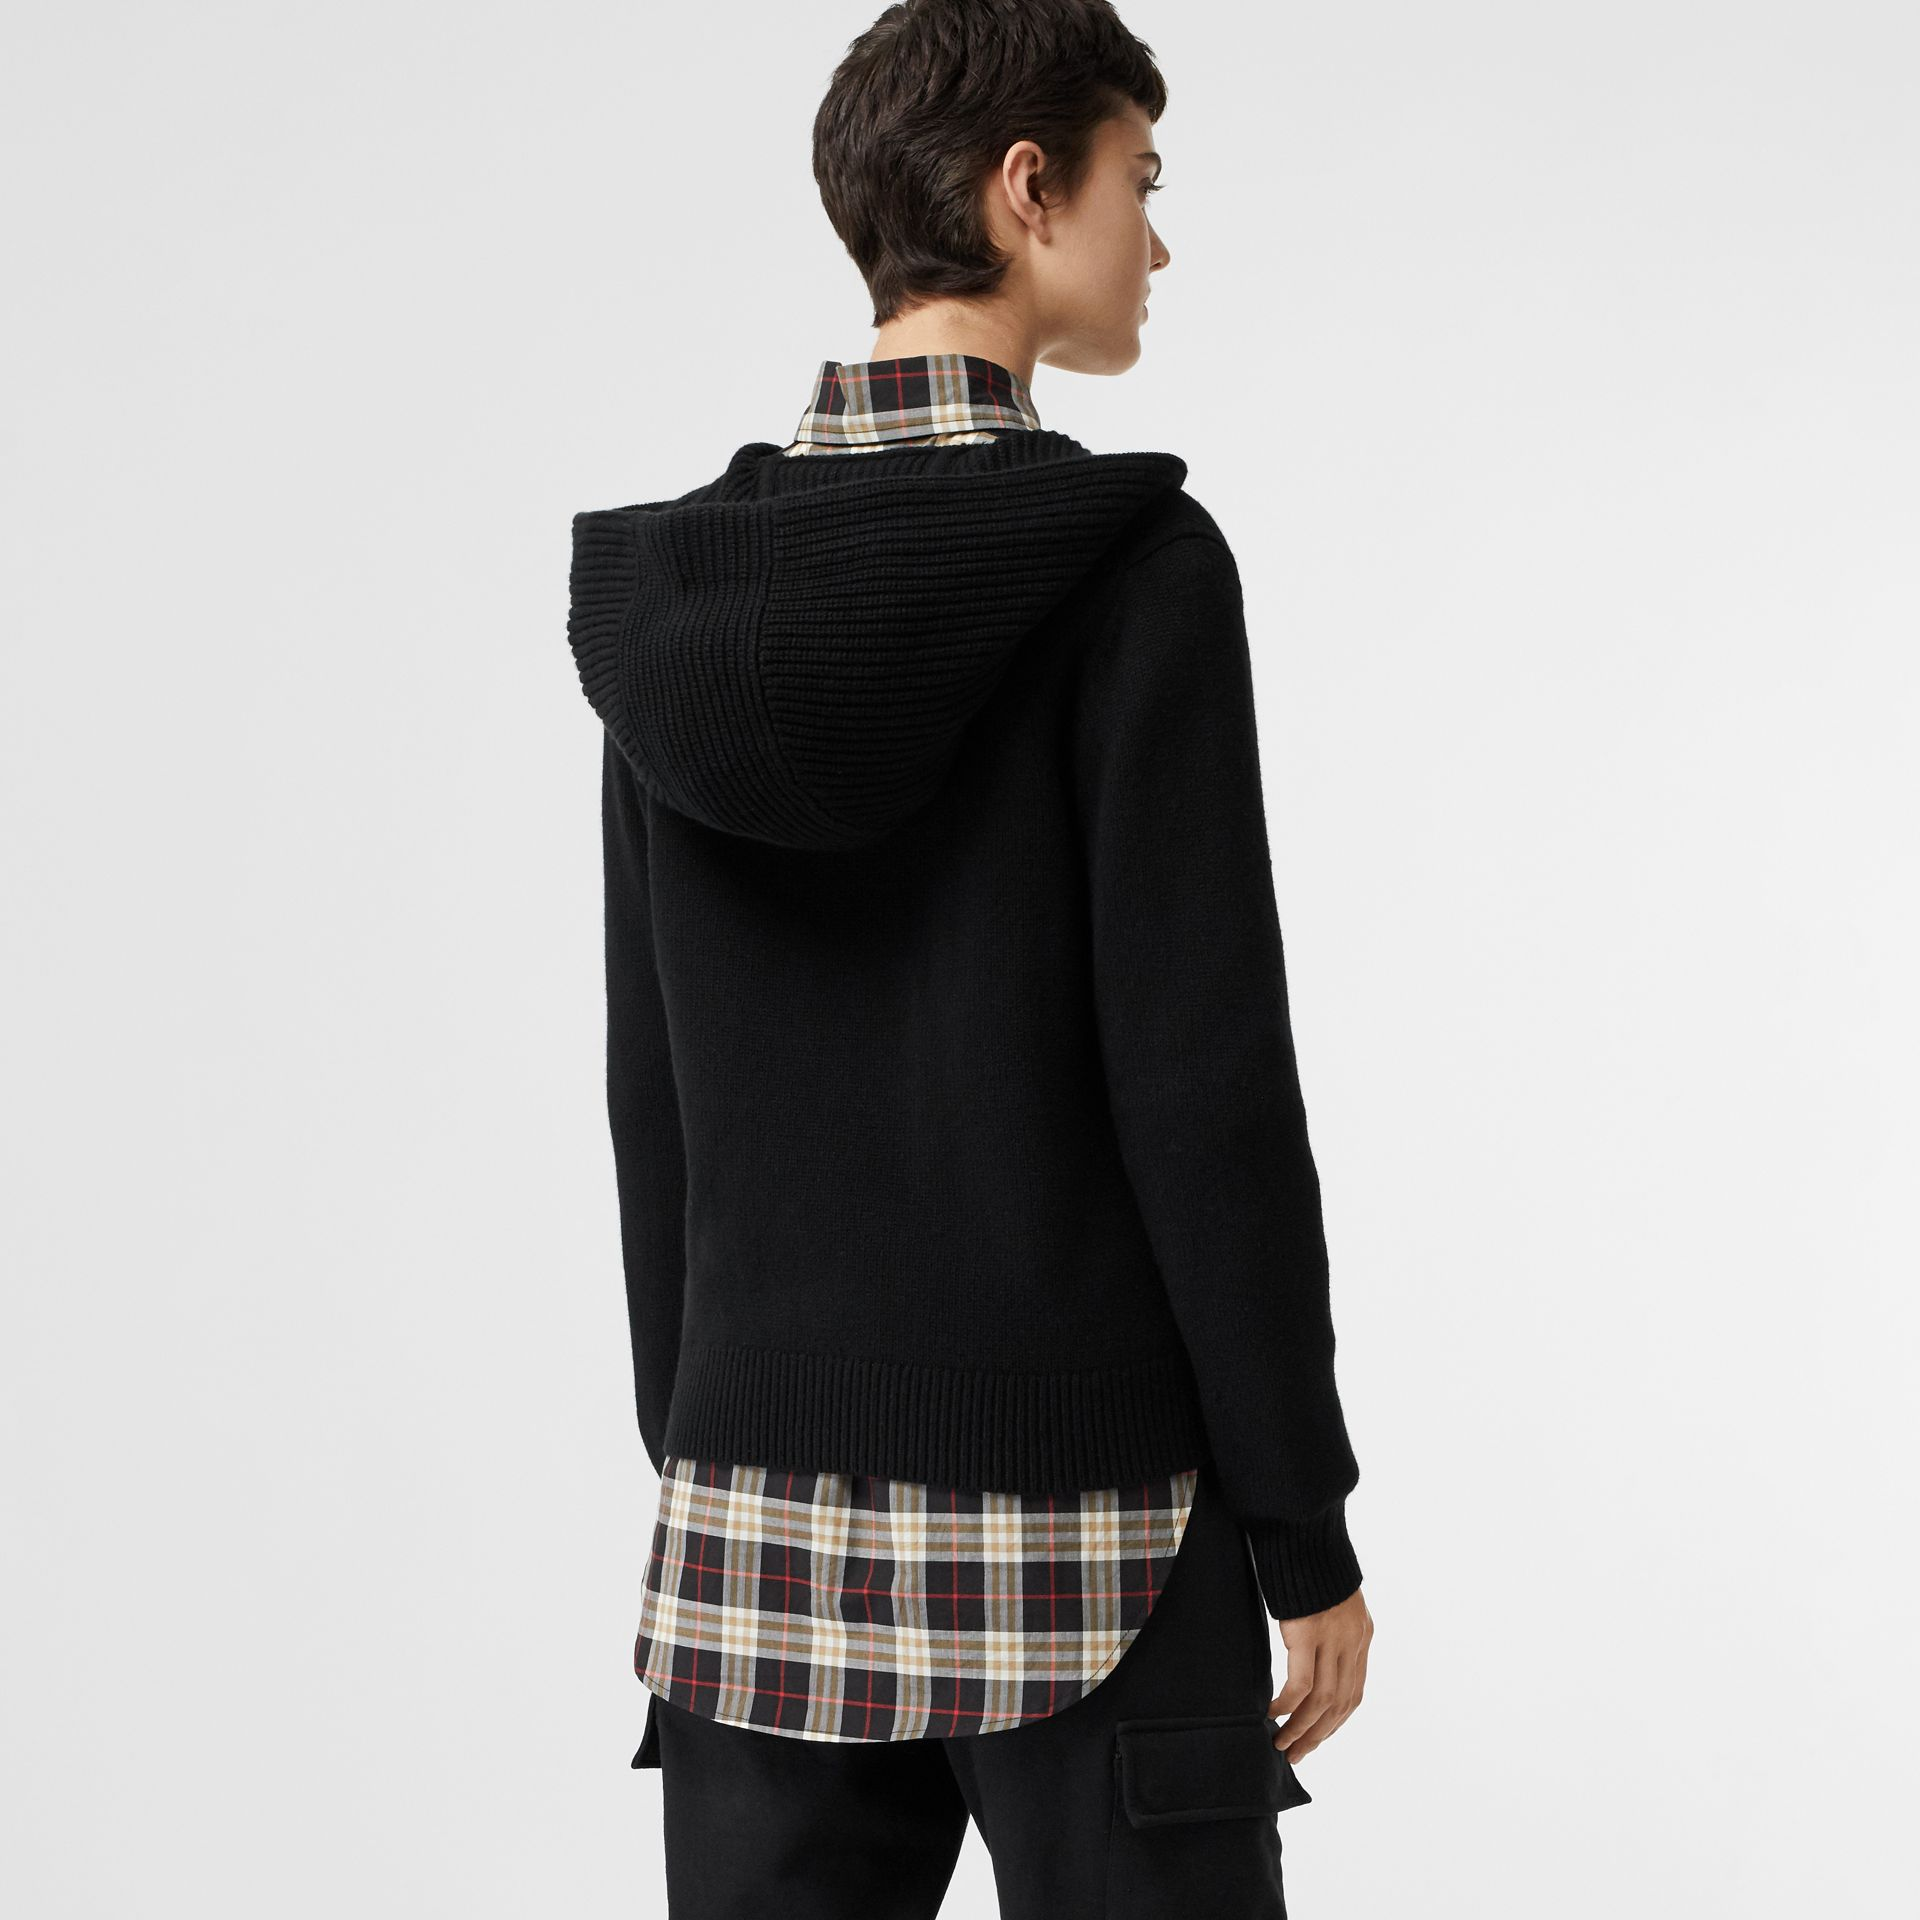 Embroidered Crest Cashmere Hooded Top in Black - Women | Burberry - gallery image 2